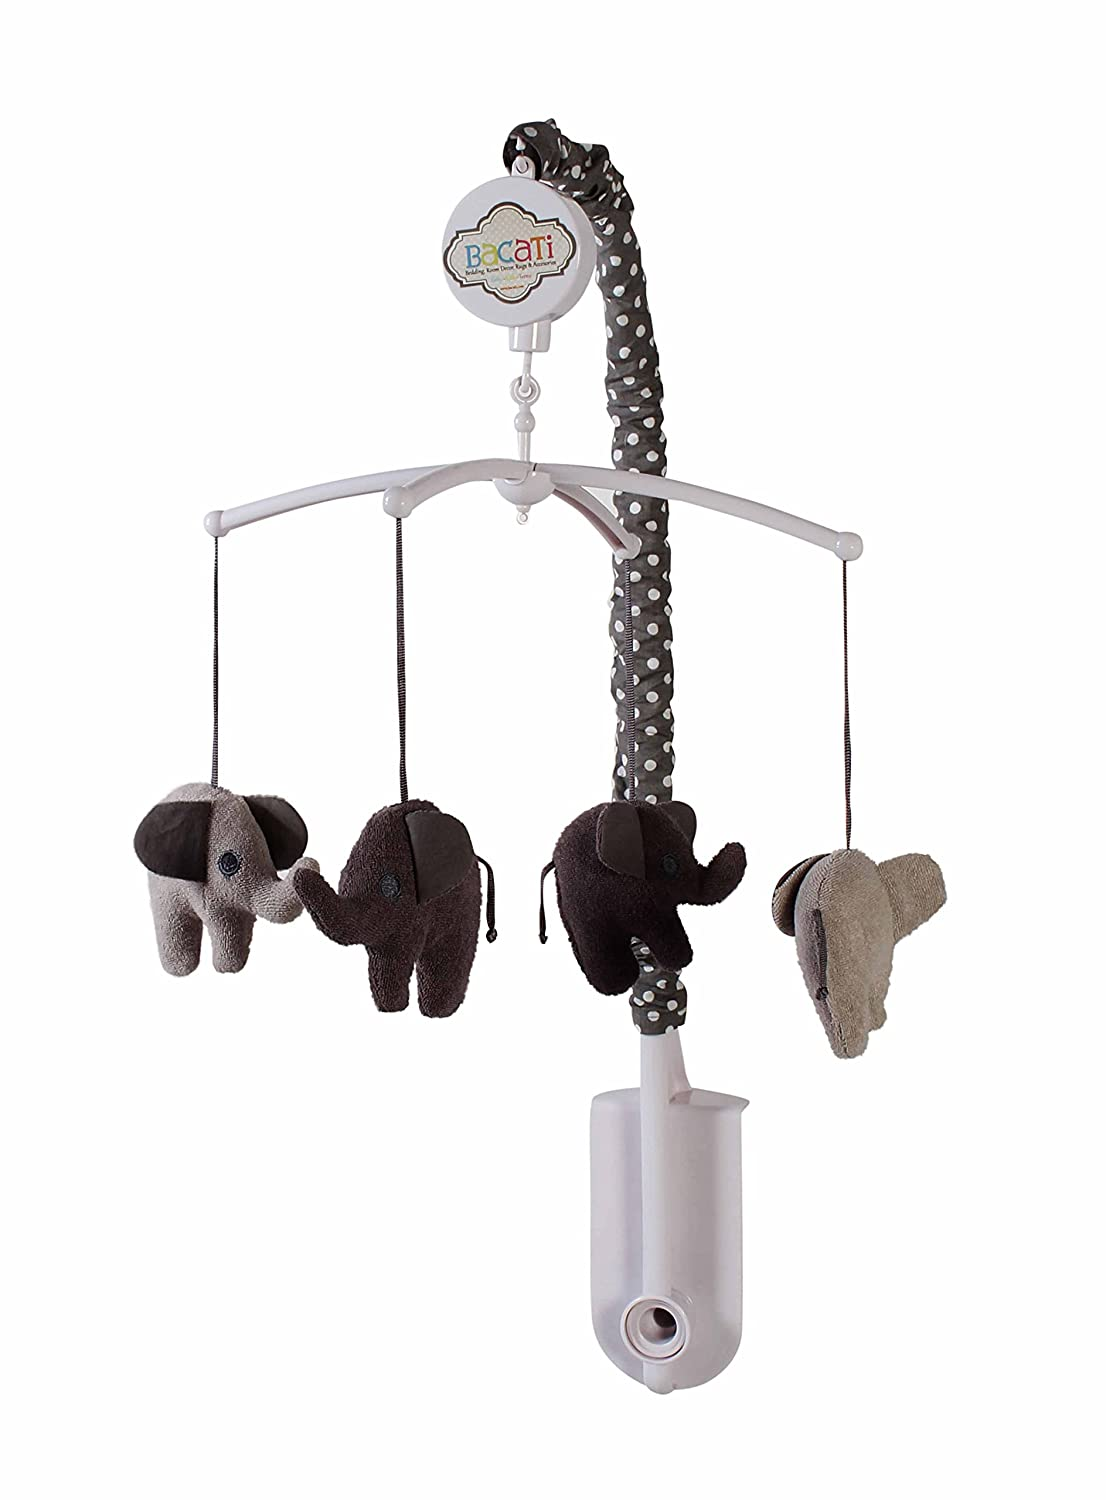 Bacati Elephants Unisex Musical Mobile Playing Brahms Lullaby for Attaching to US Standard Cribs, Grey